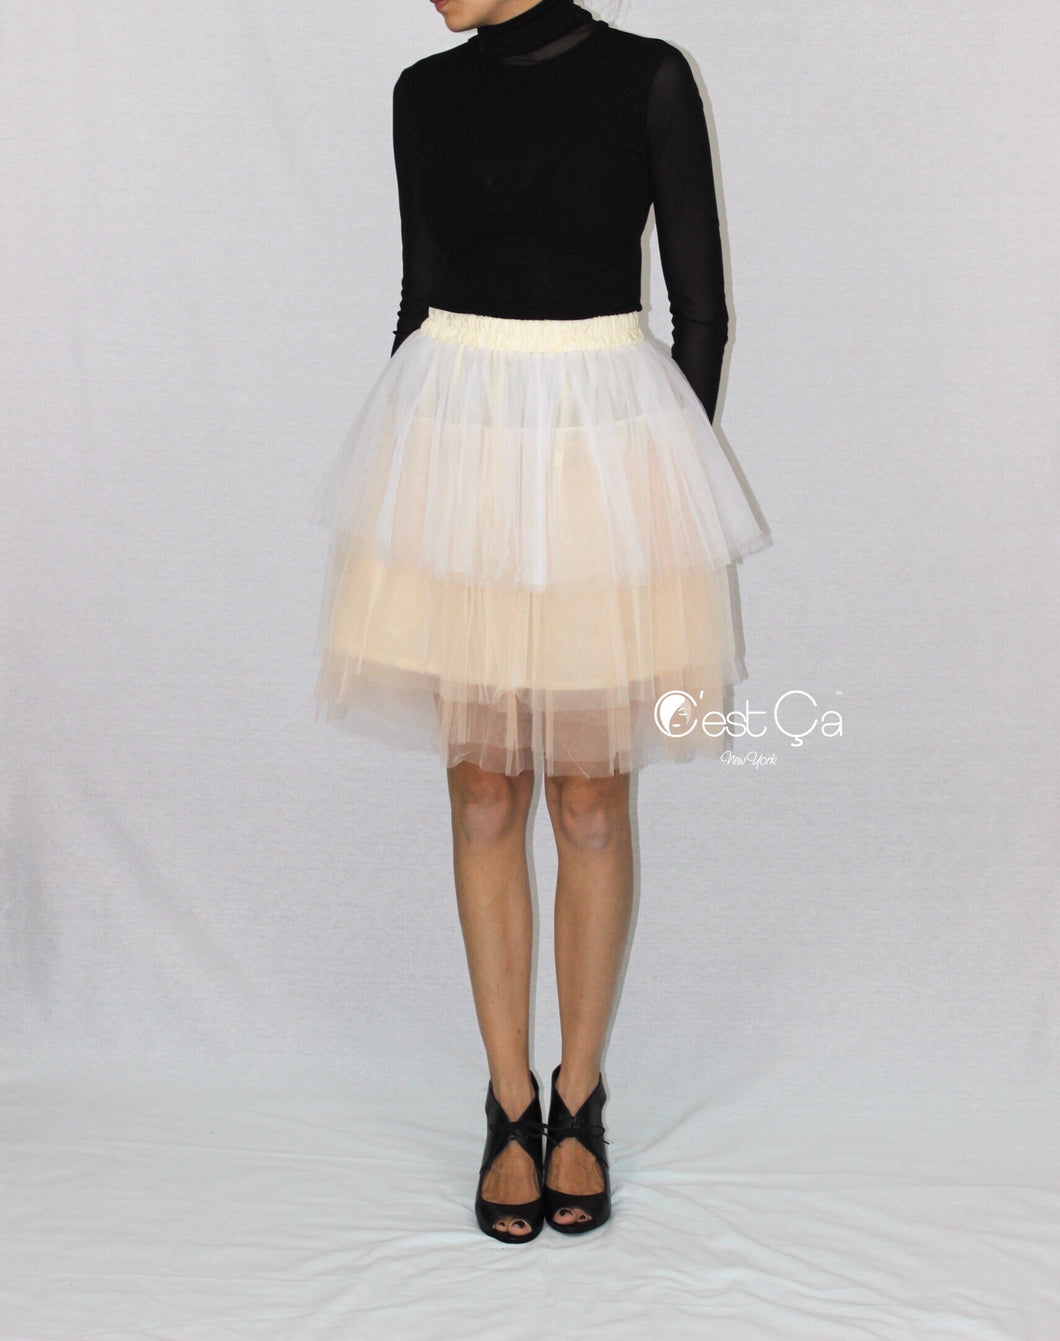 Camila Ombre Tiered Tulle Skirt (Champagne and White) - C'est Ça New York